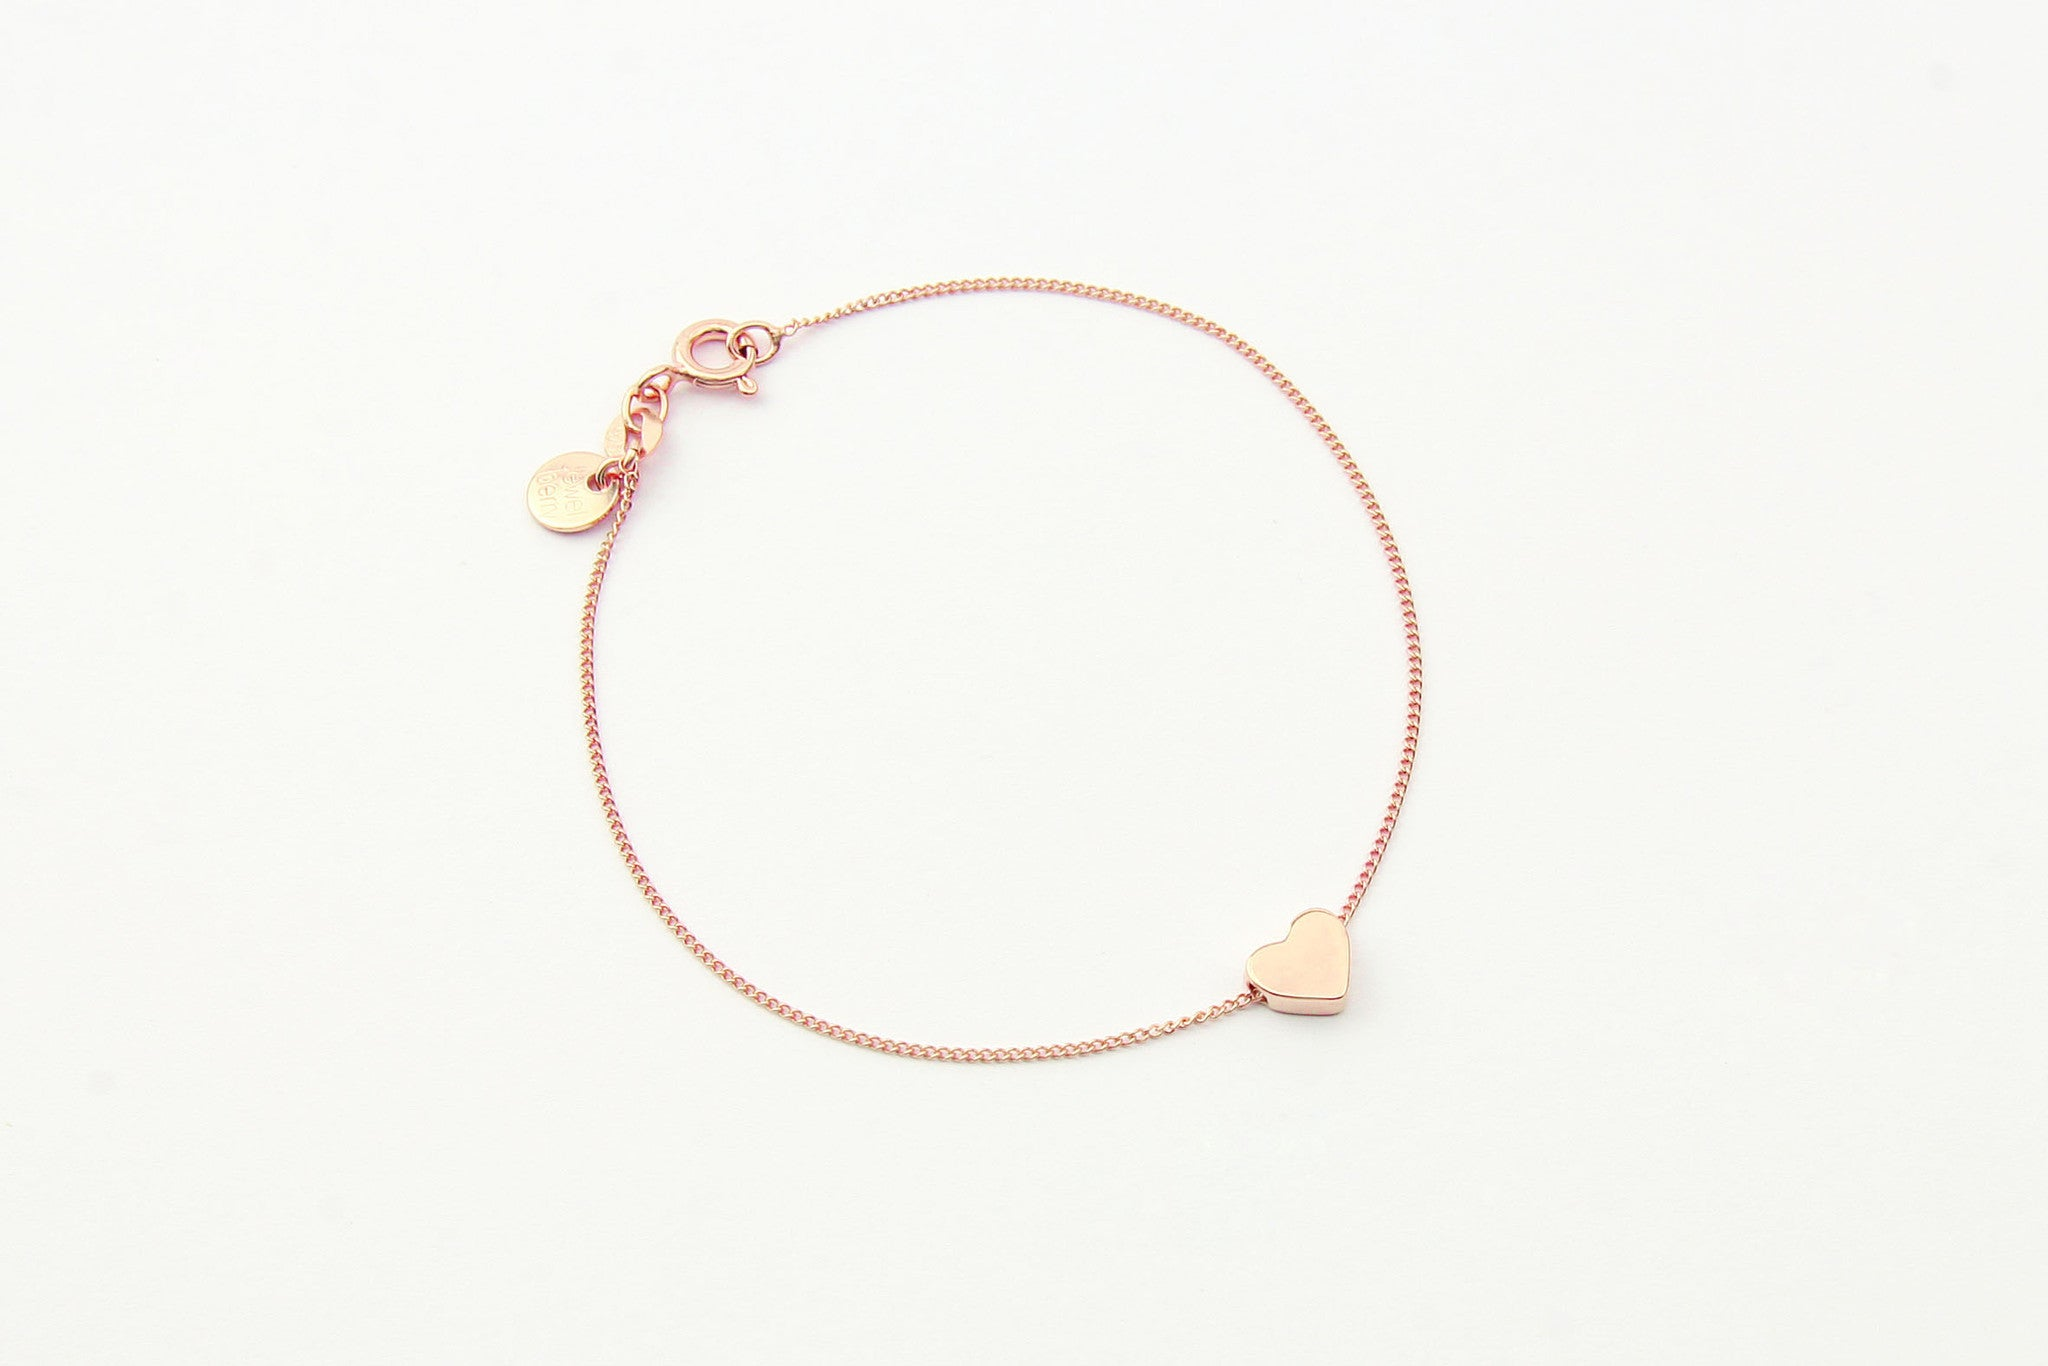 jewelberry armband bracelet little heart rose gold plated sterling silver fine jewelry handmade with love fairtrade curb chain